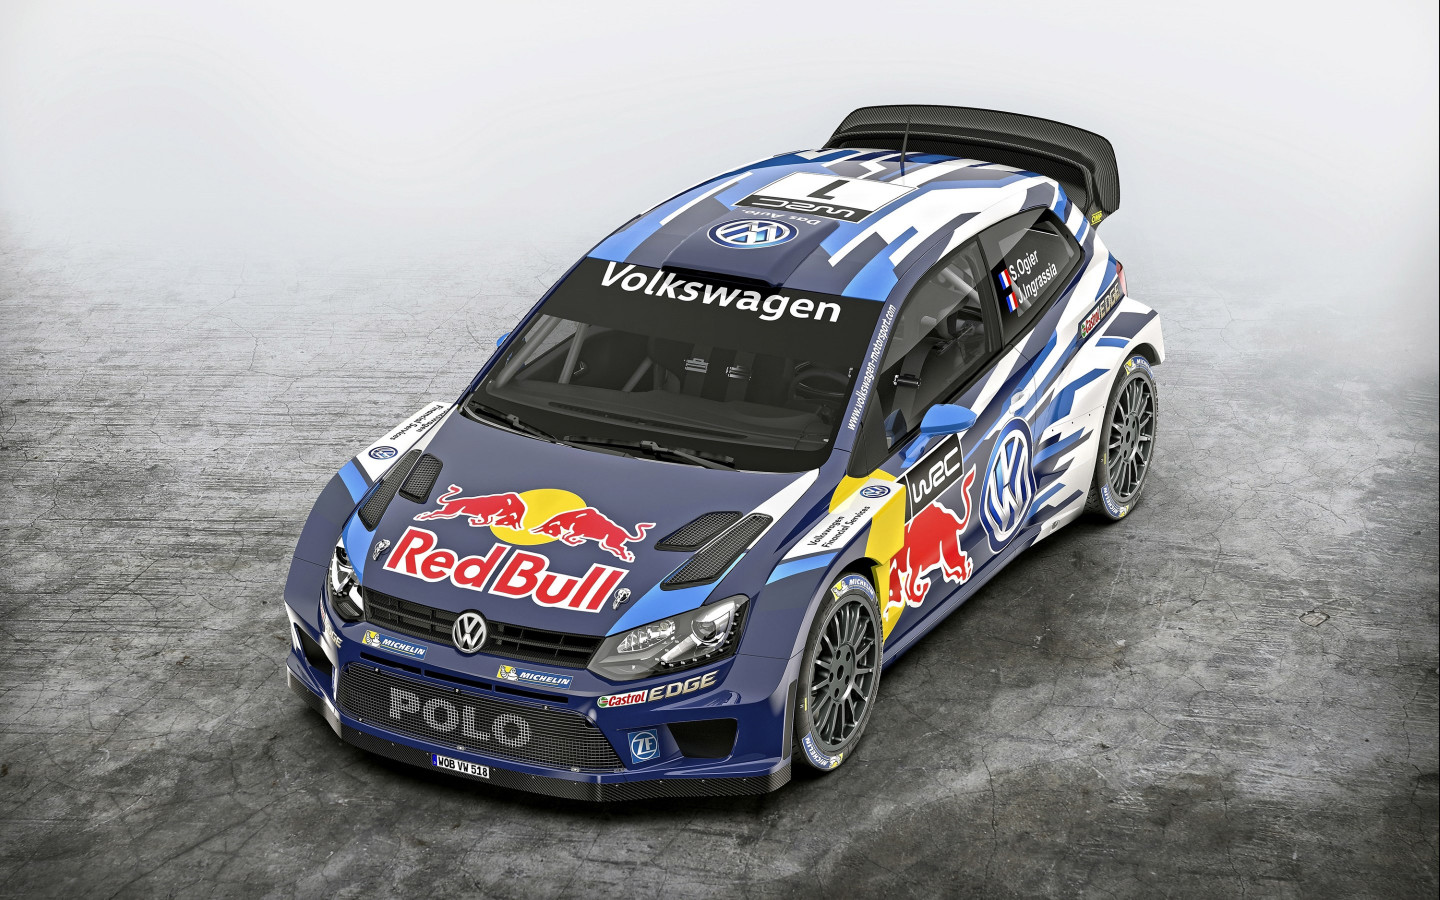 Volkswagen Polo R WRC wallpaper 1440x900